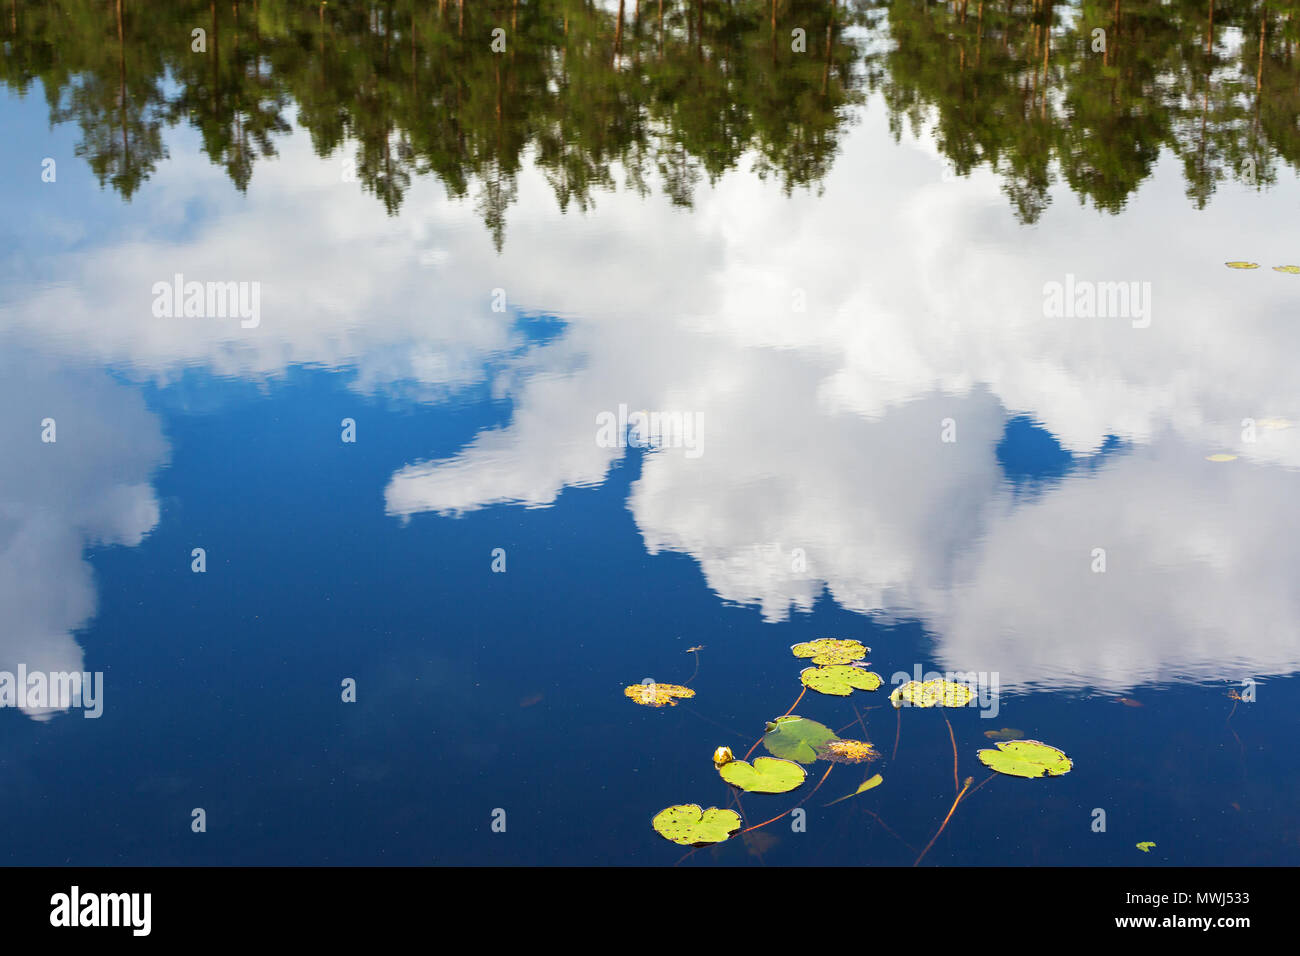 Lily leaf and reflections of clouds in the water - Stock Image